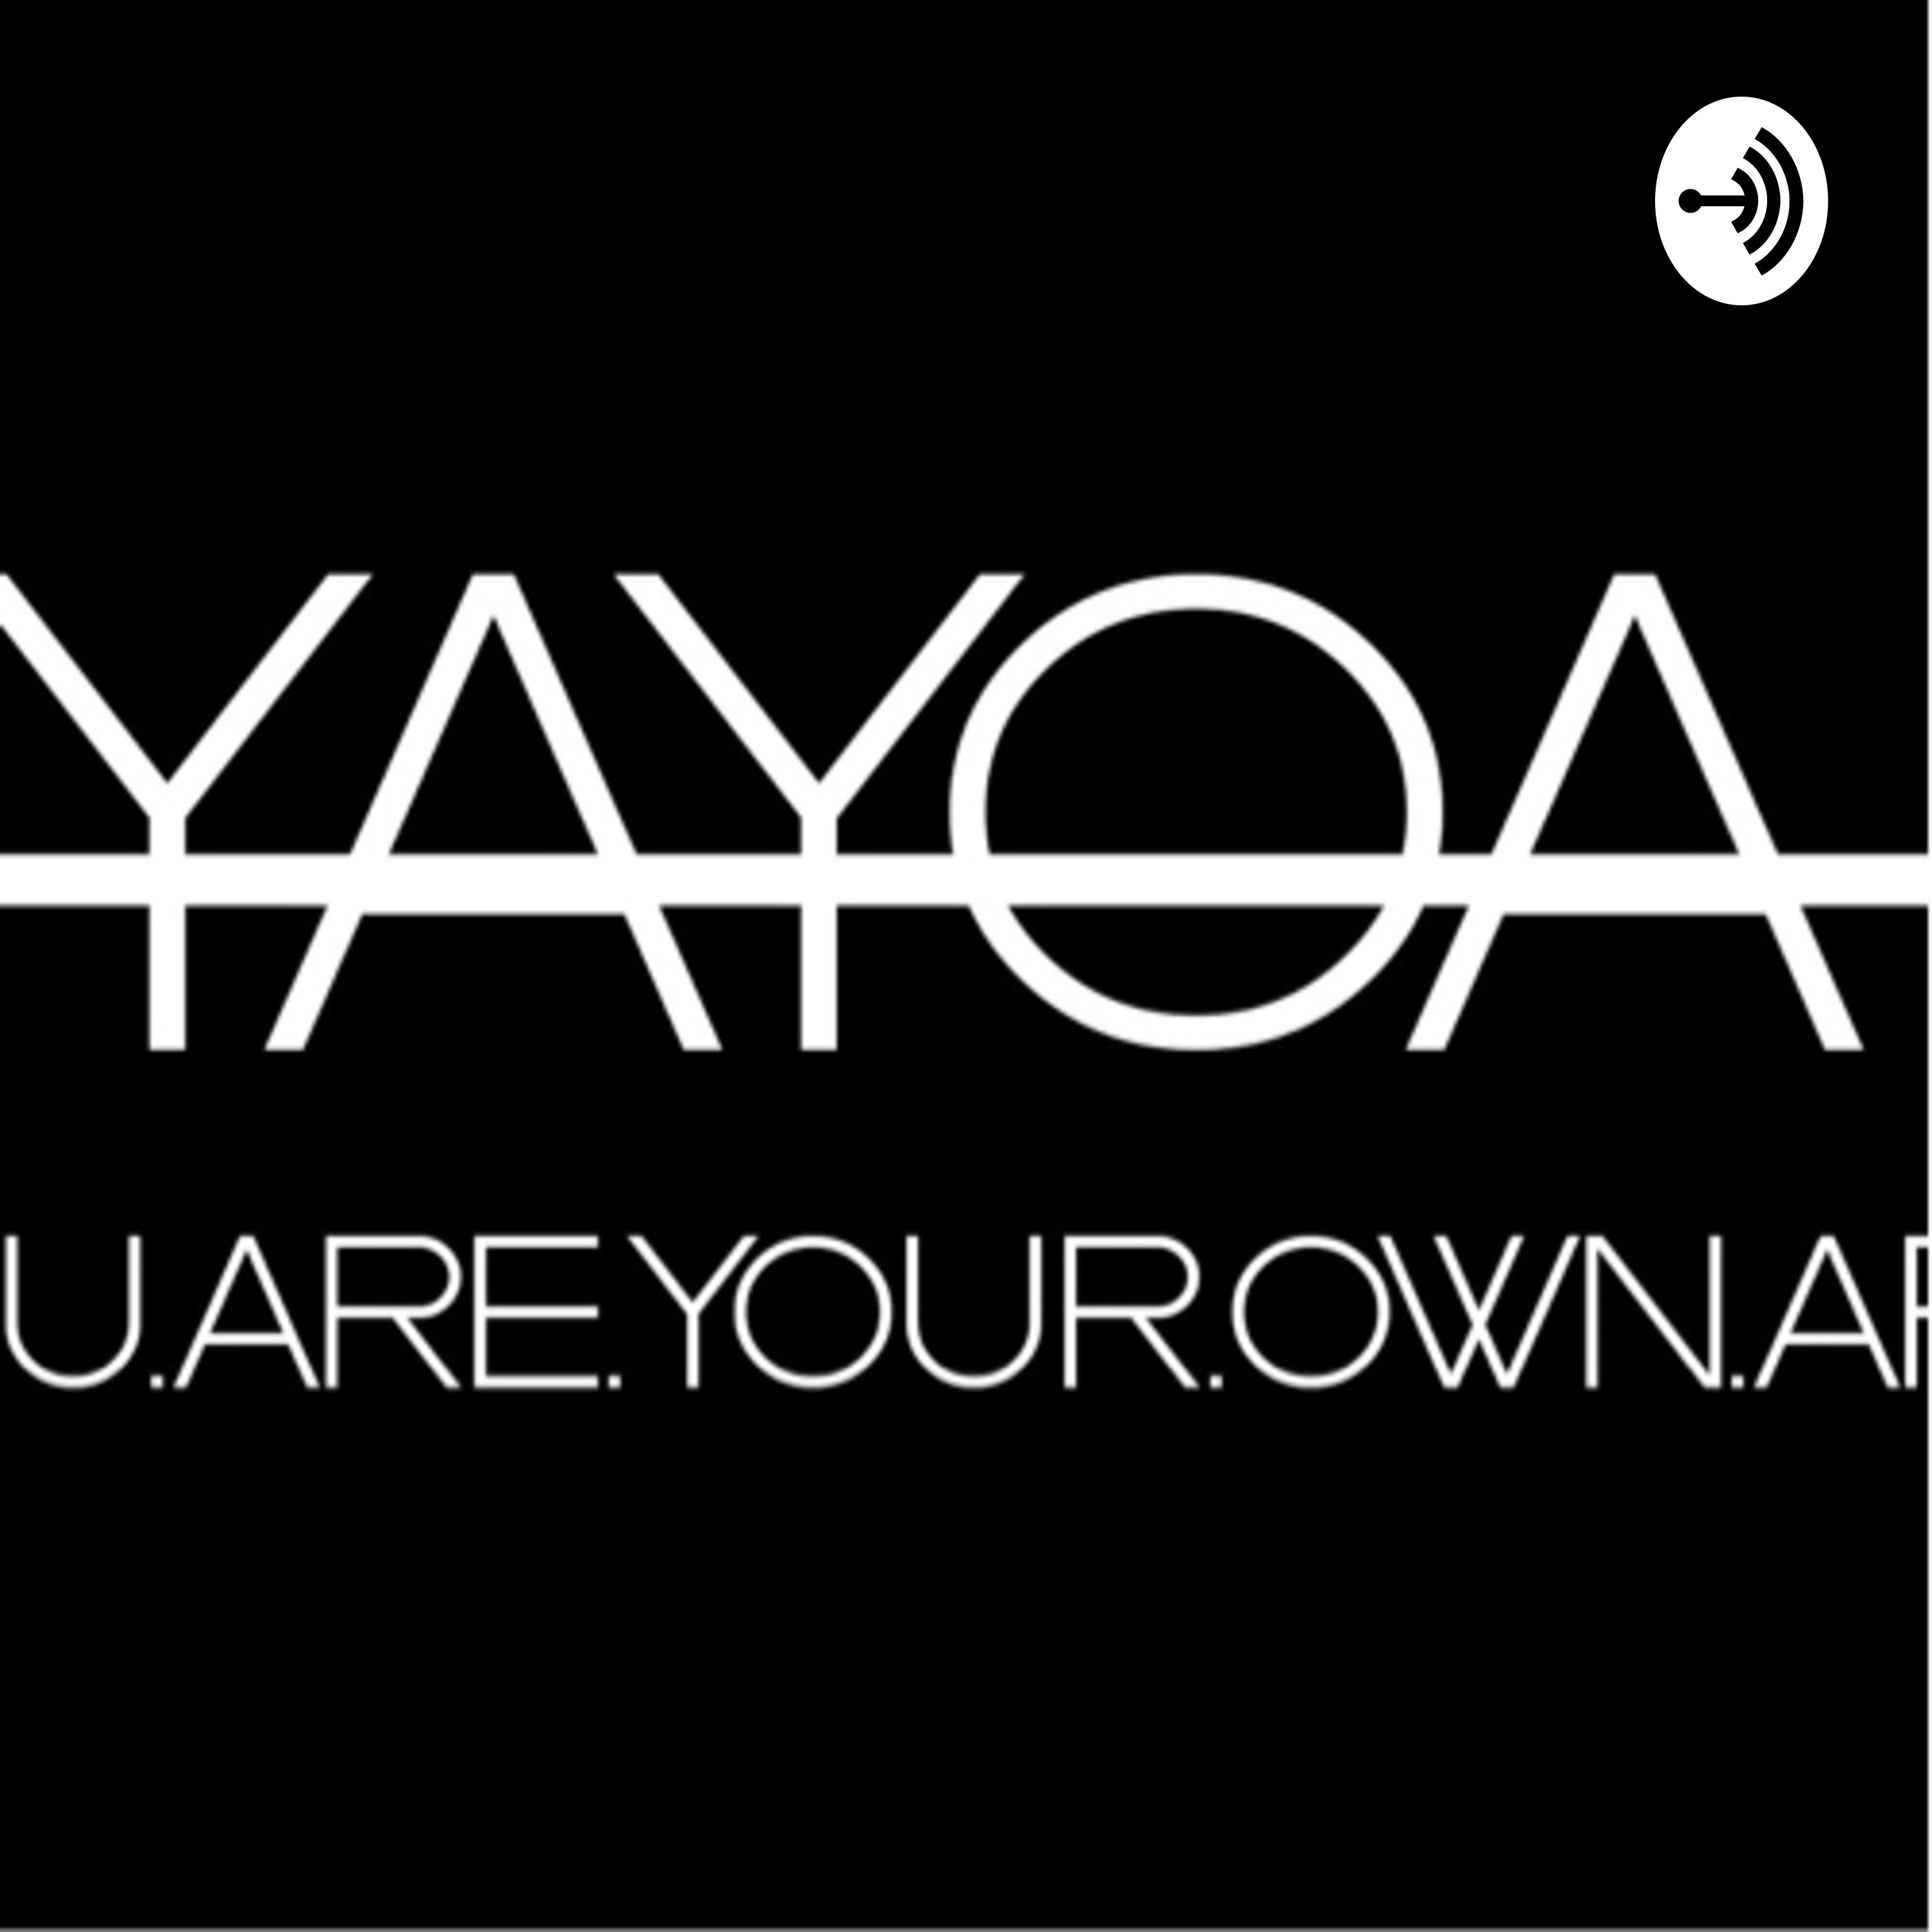 YAYOA - YOU  ARE  YOUR  OWN  ART   | Listen Free on Castbox